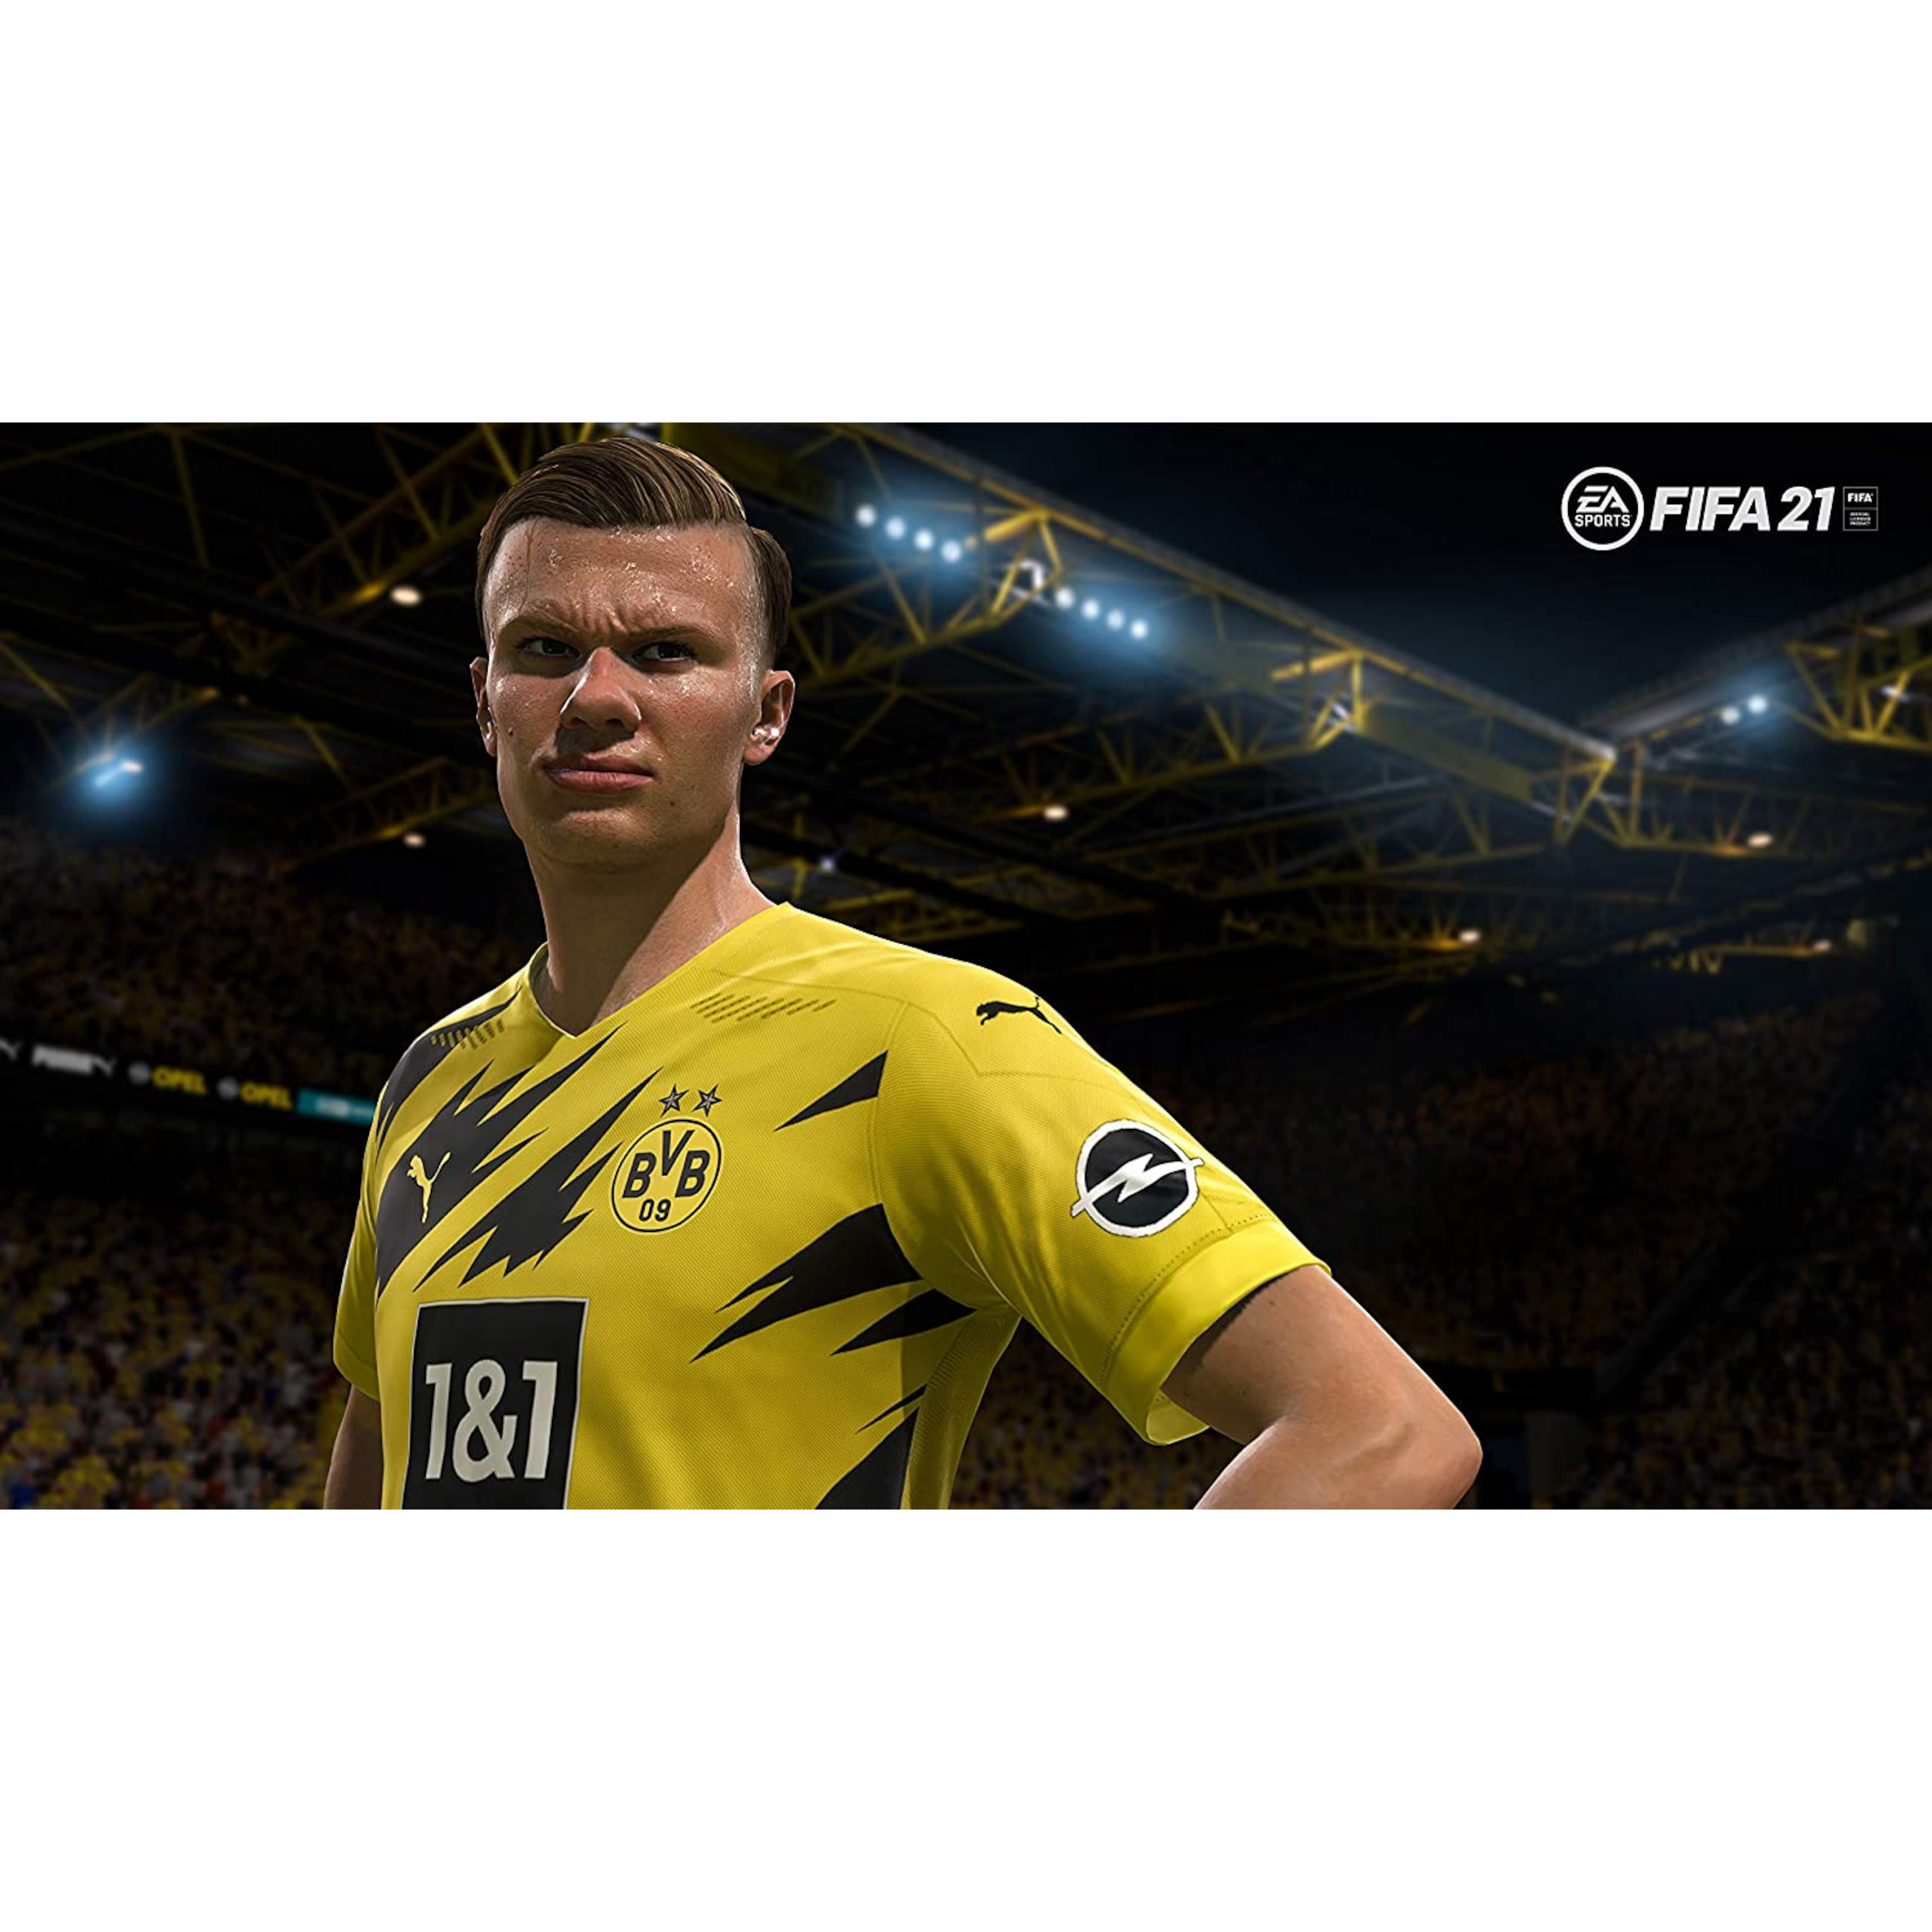 FIFA-21-Xbox-One-Standard-Edition-CD-Videospiel-DISC-EA-Sports-Series-X-Upgrade Indexbild 3